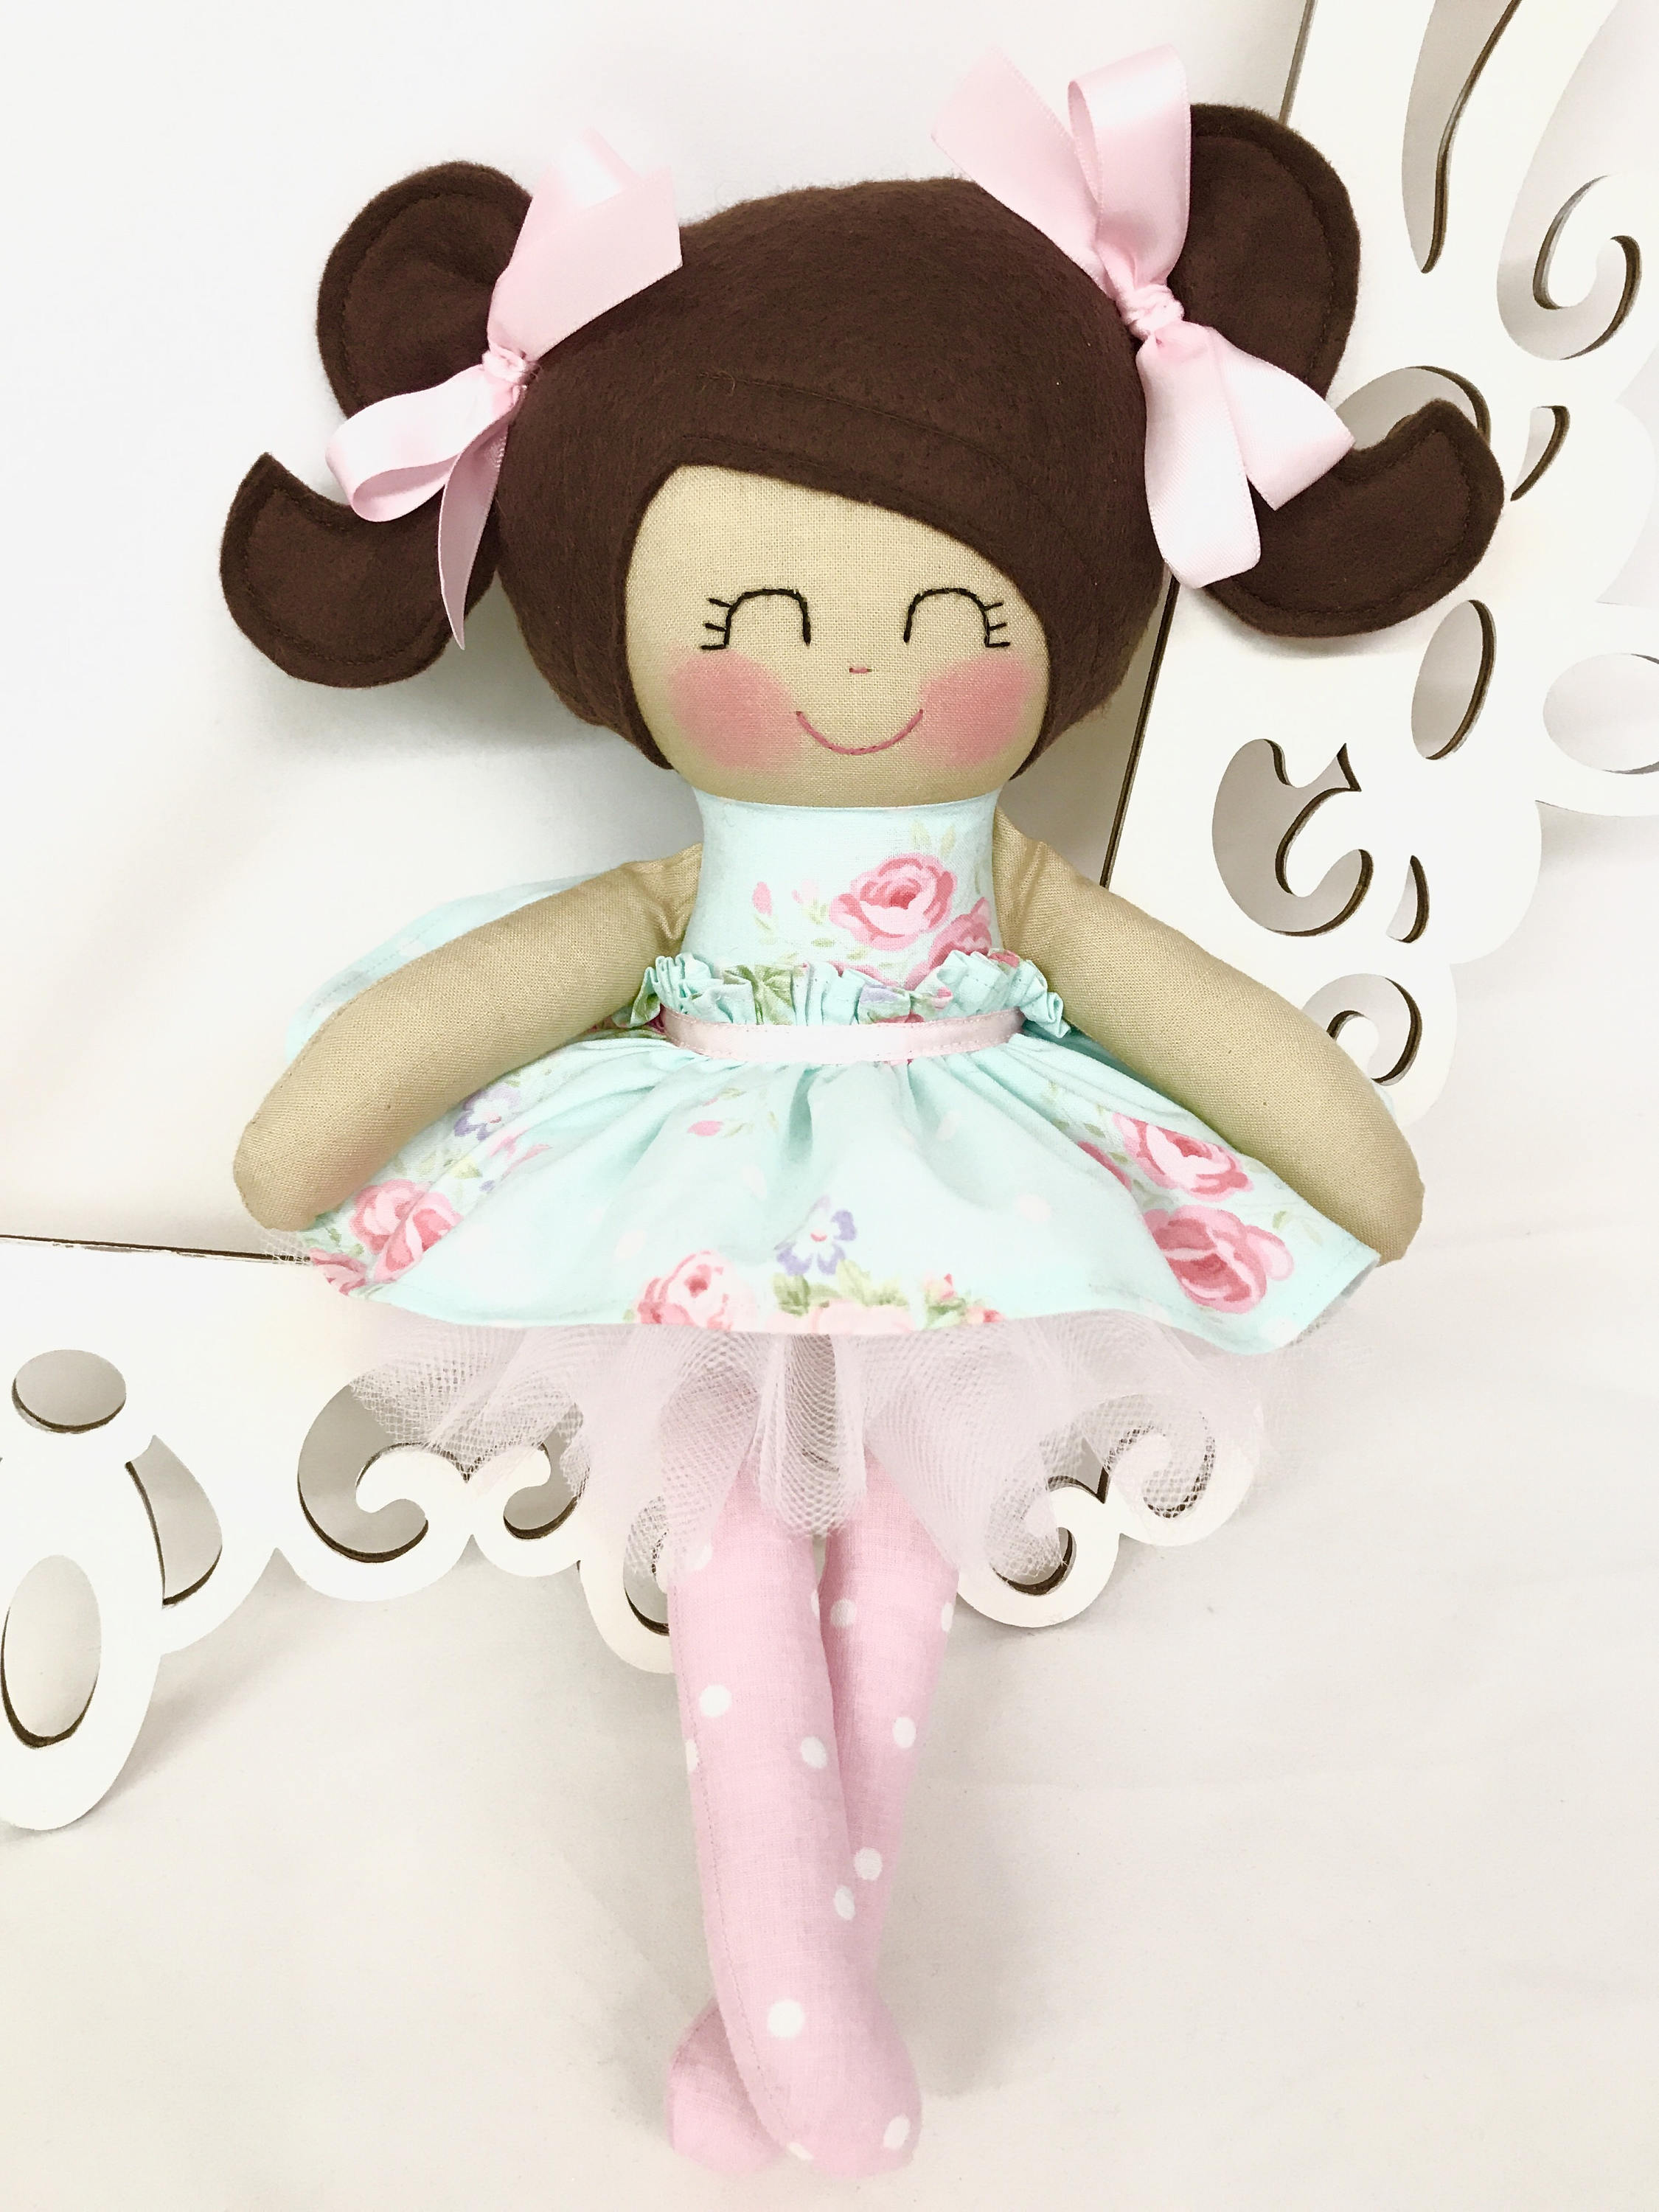 Cloth baby doll Fabric Dolls Handmade Dolls Soft Doll